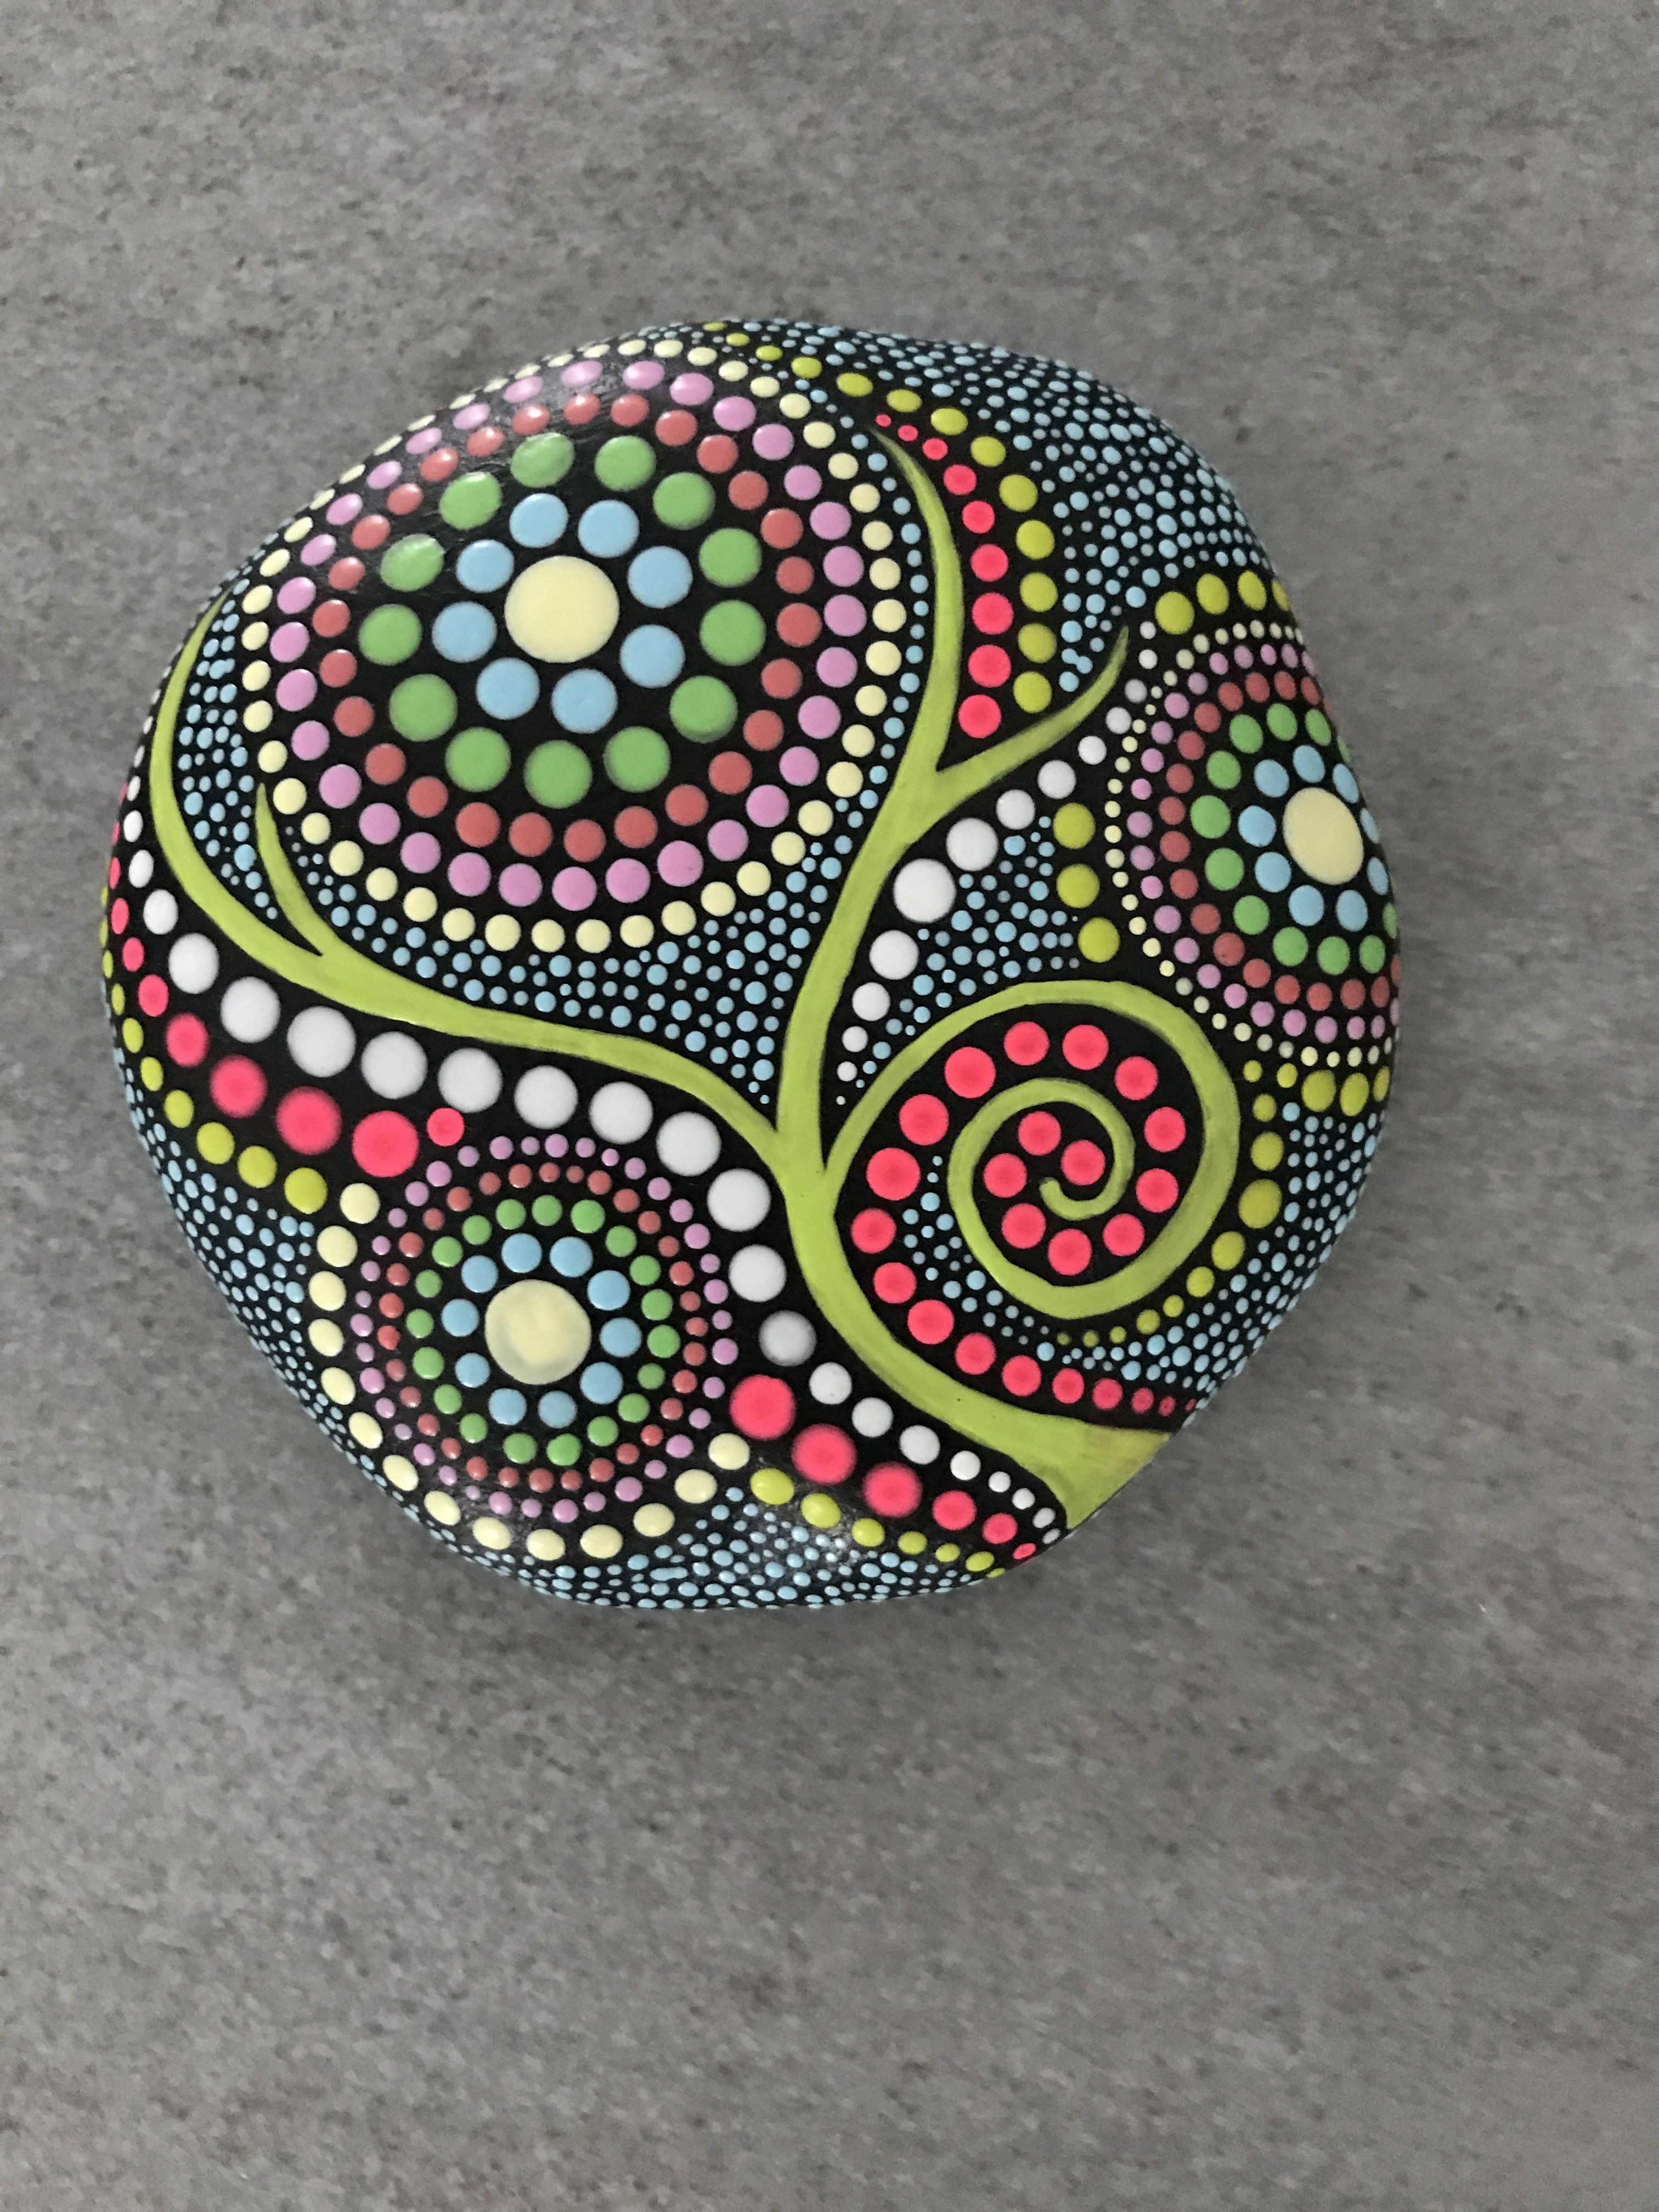 Selfmade By Corinne Dot Painting Stone Rocks Rock Painting